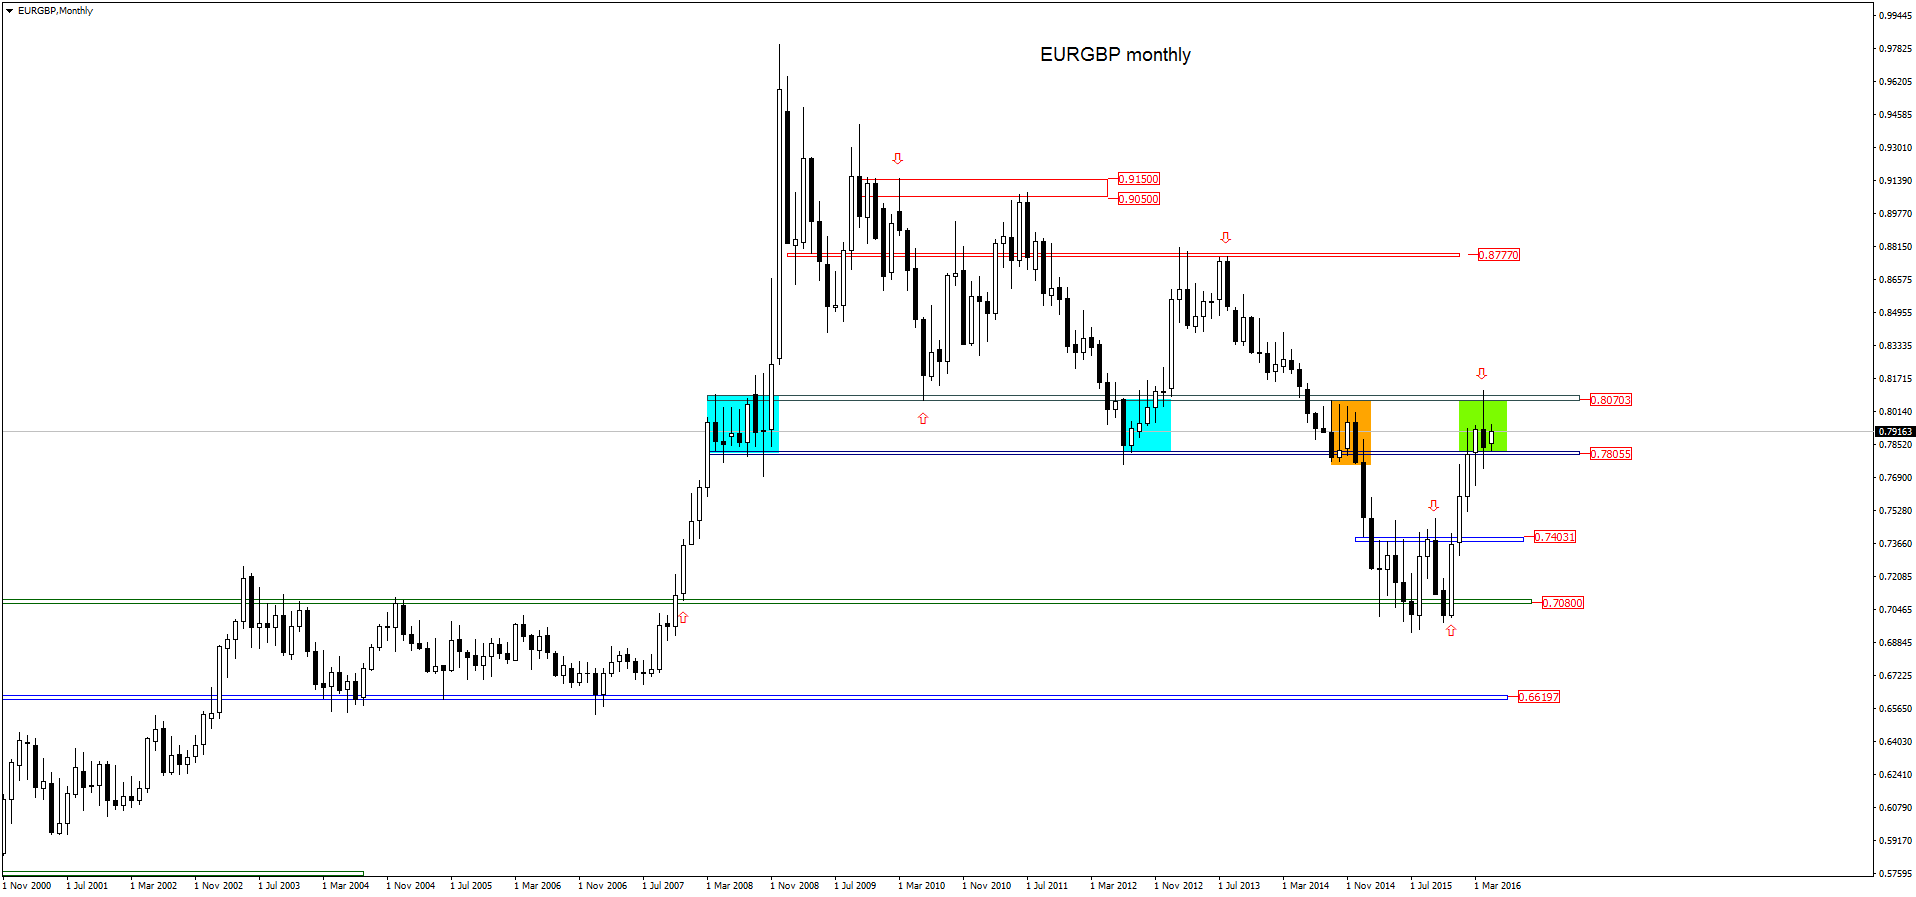 FXMAG forex eurgbp - szeroka analiza price action 1